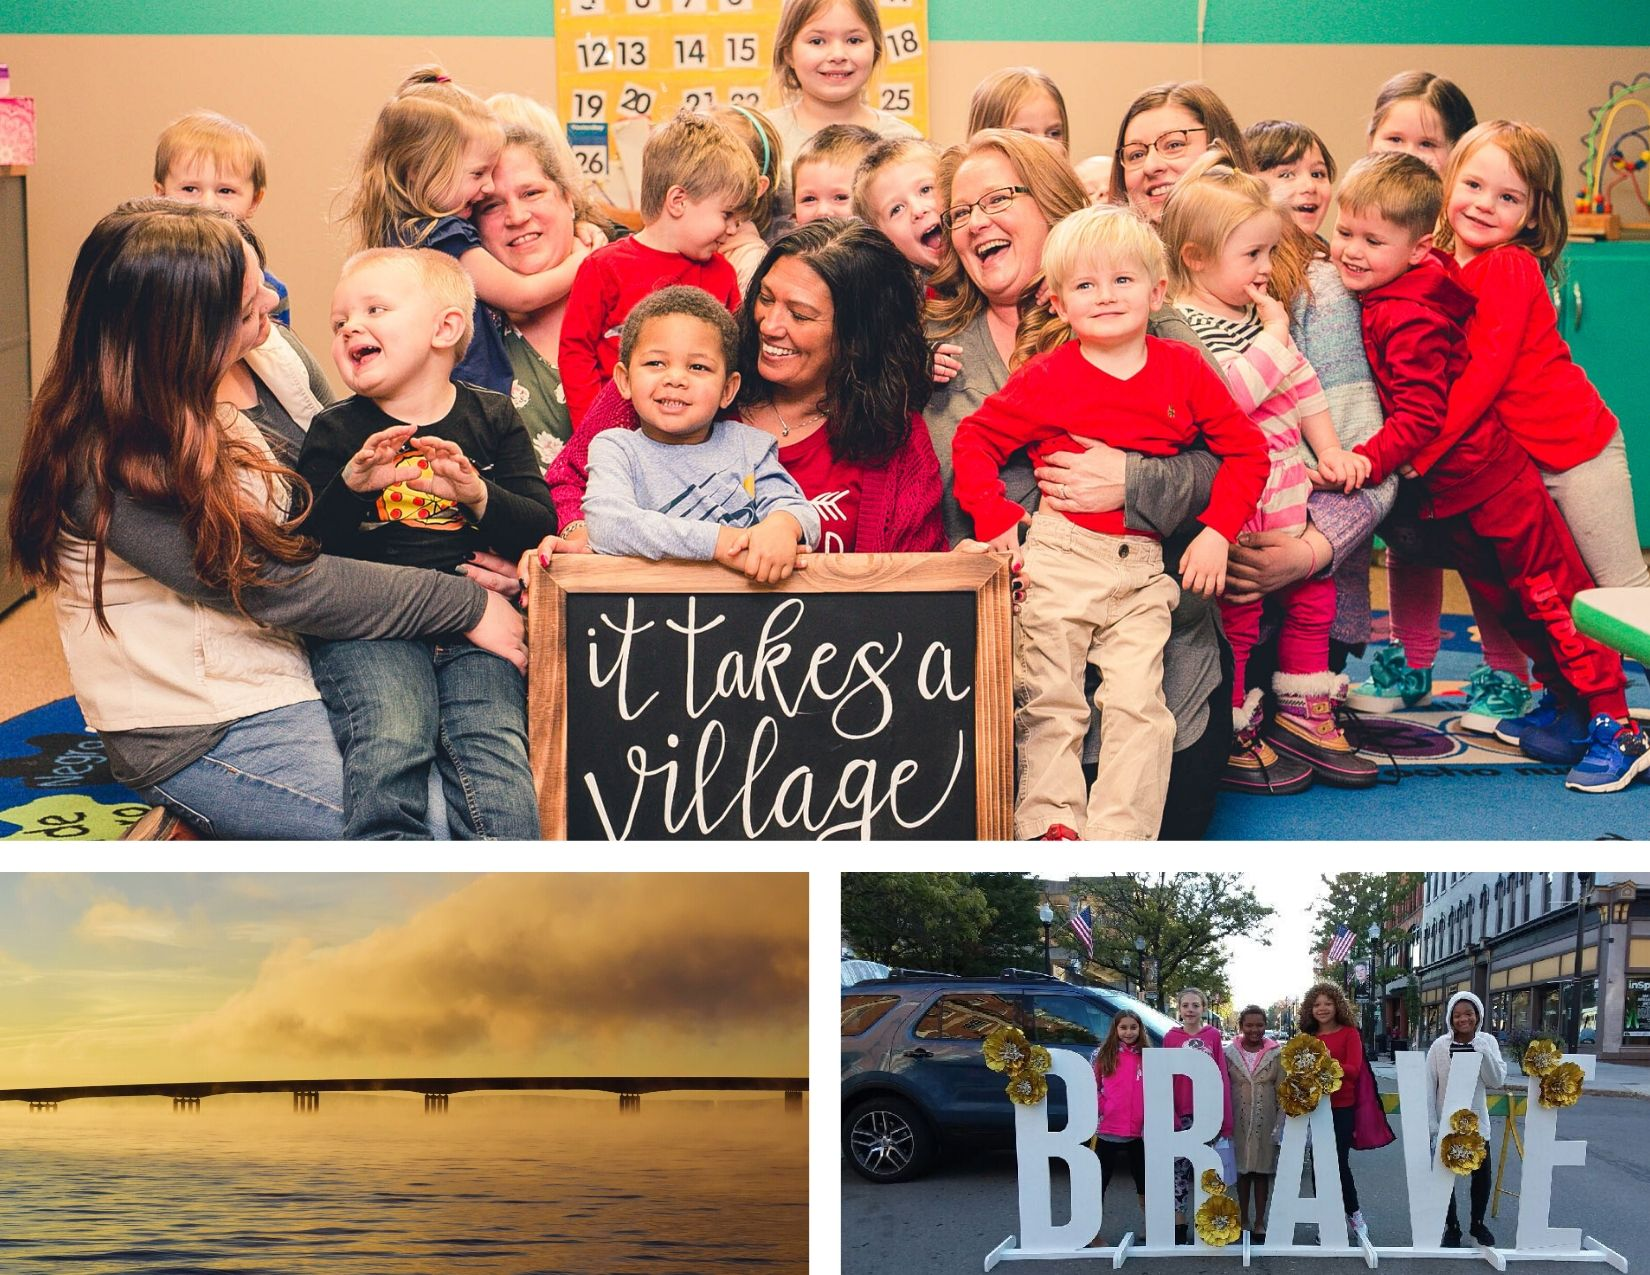 The three winning photographs from the I Love CHQ County Photo Contest were submitted by Sarah Minor, Steve Hayes and Dianne Woleen.